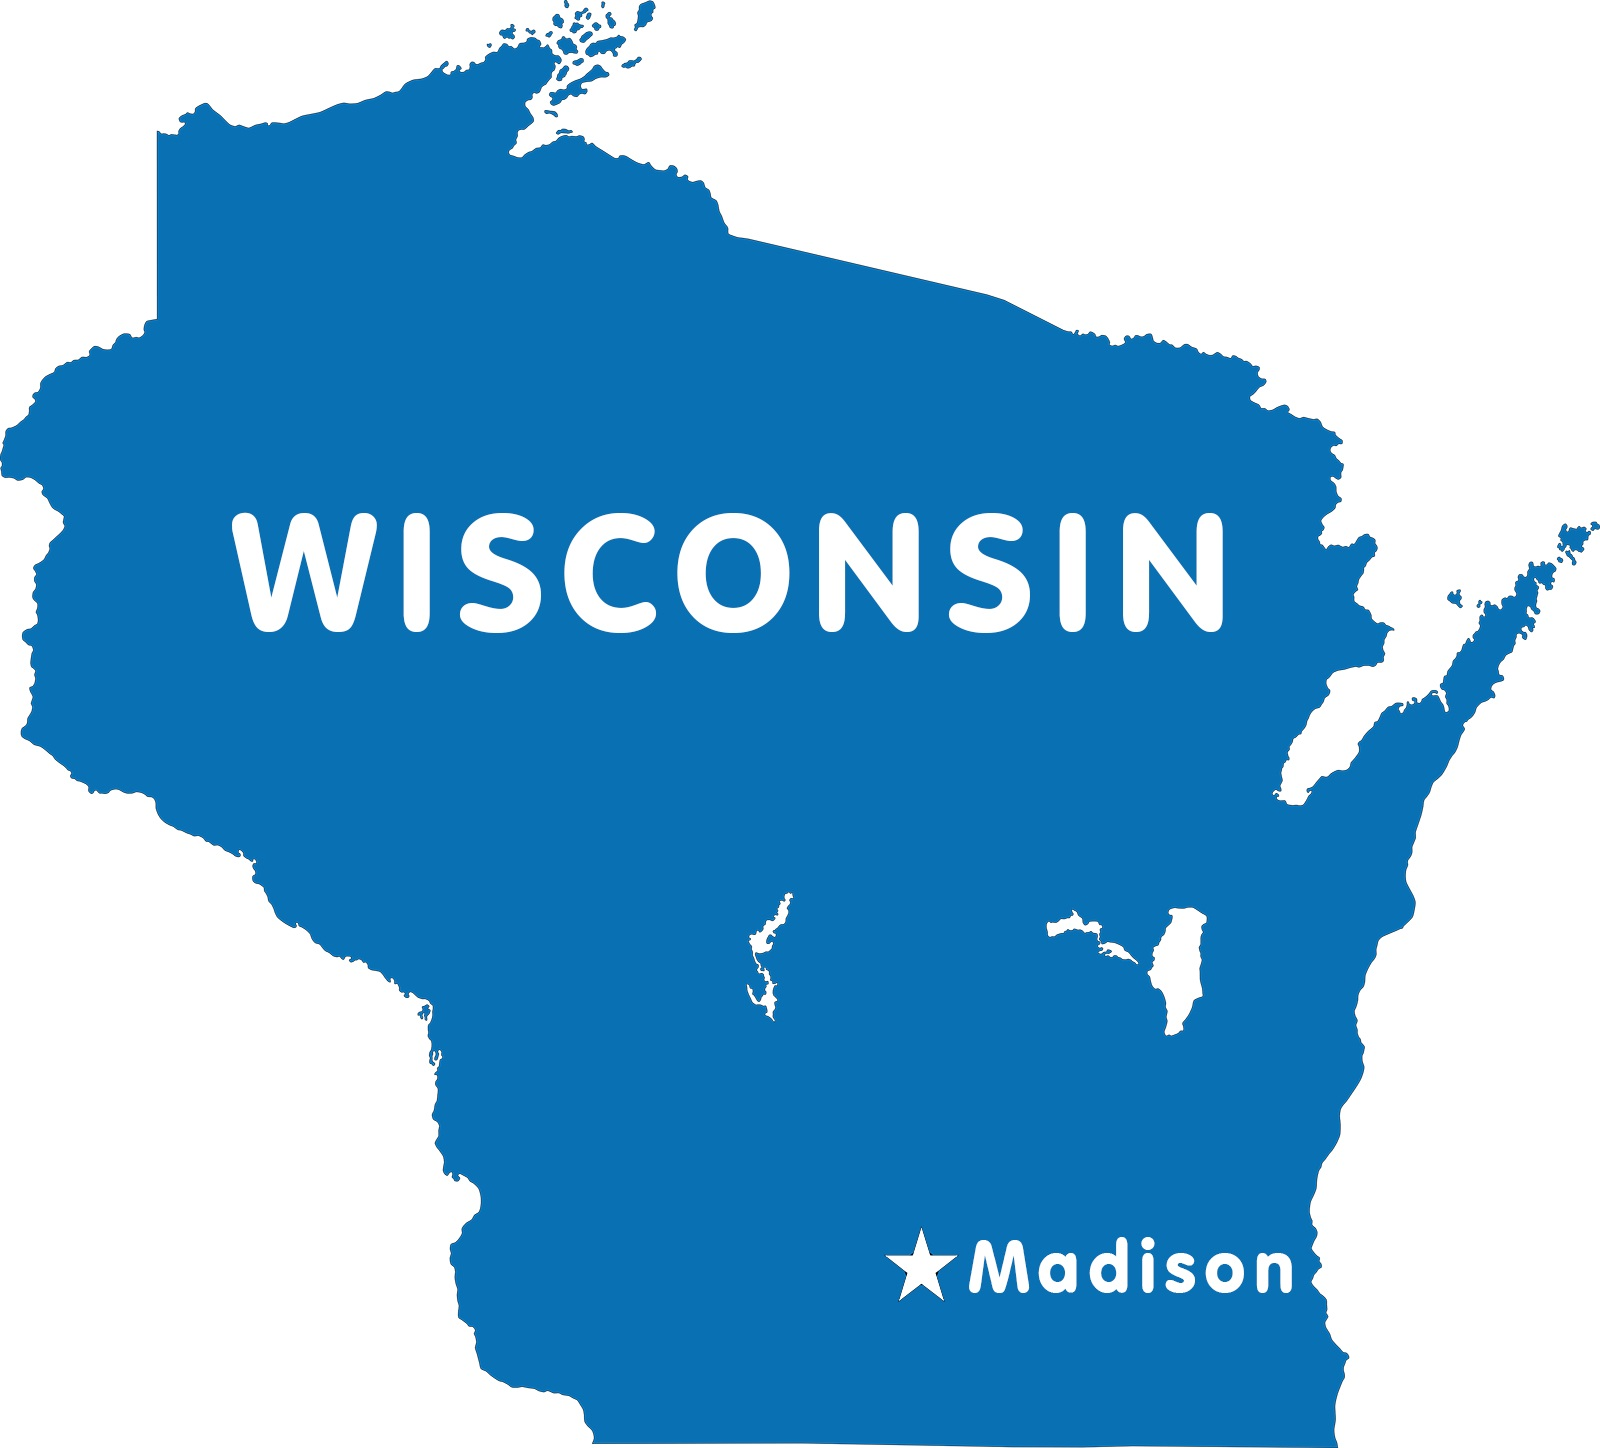 Wisconsin Capital Map | Large Printable High Resolution and Standard Map